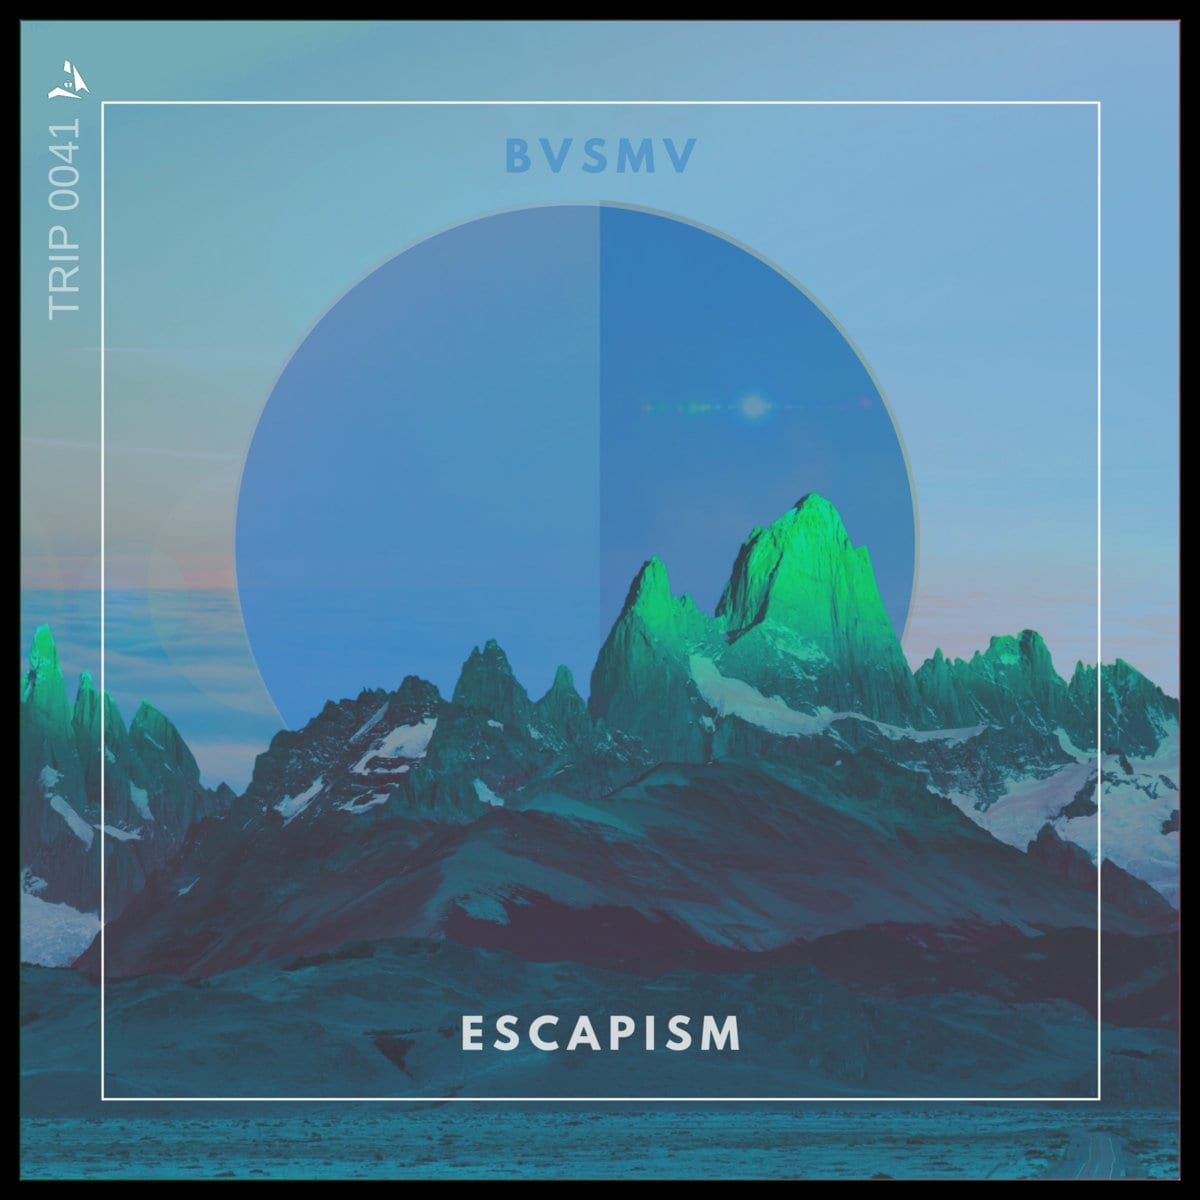 BVSMV, A Lush Form of Electronic Music That's Dreamy, Retro and Well Polished